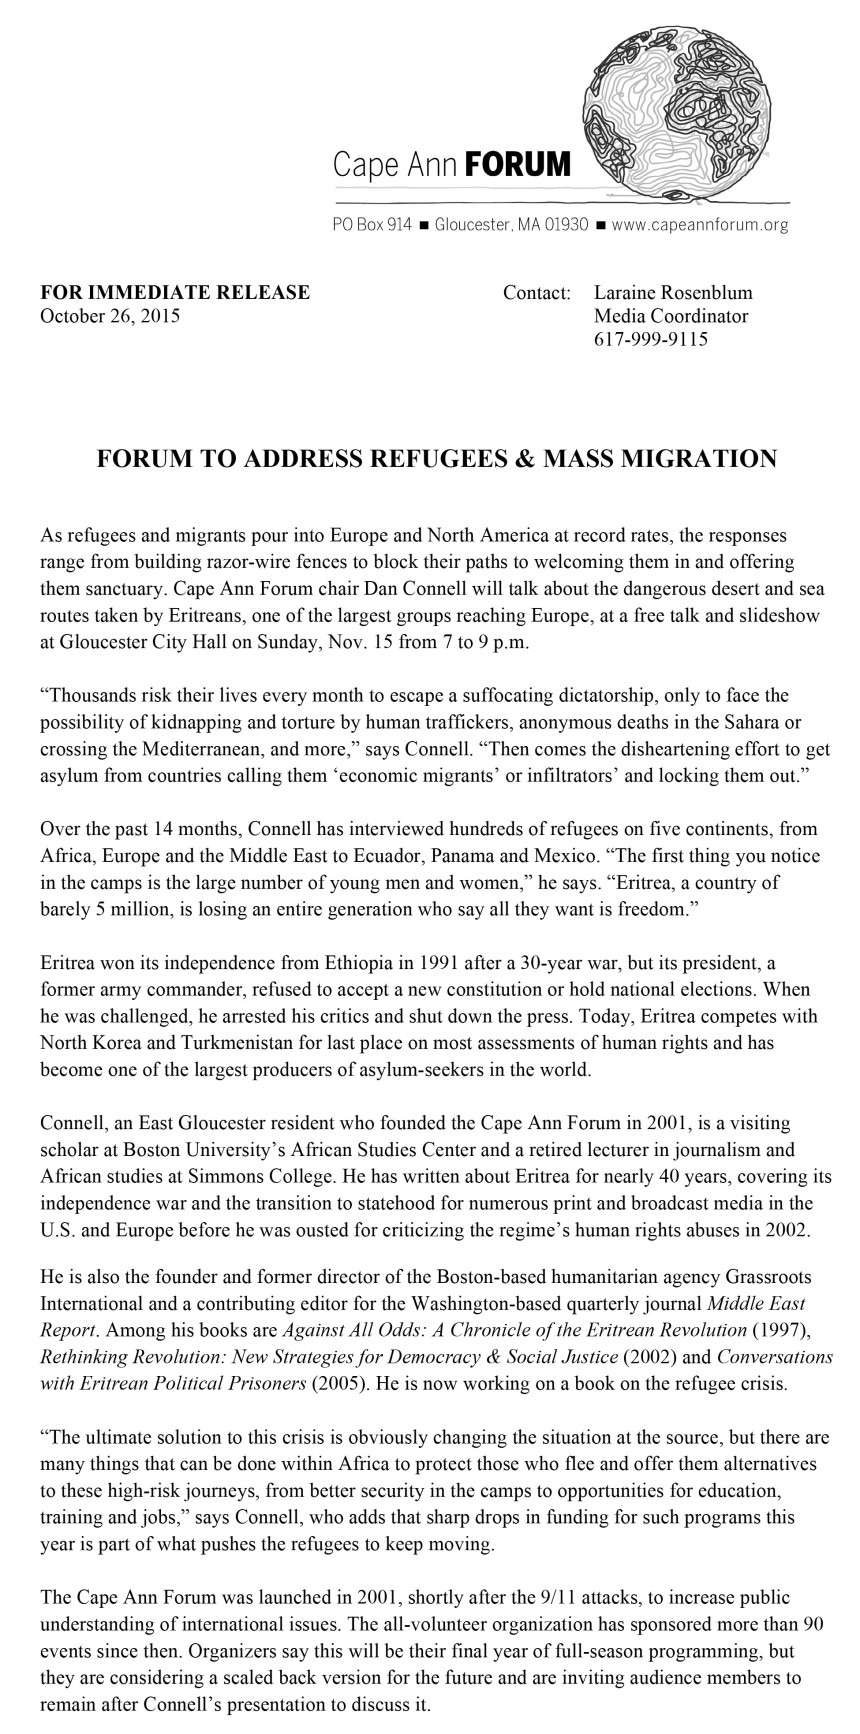 cape ann forum_refugees